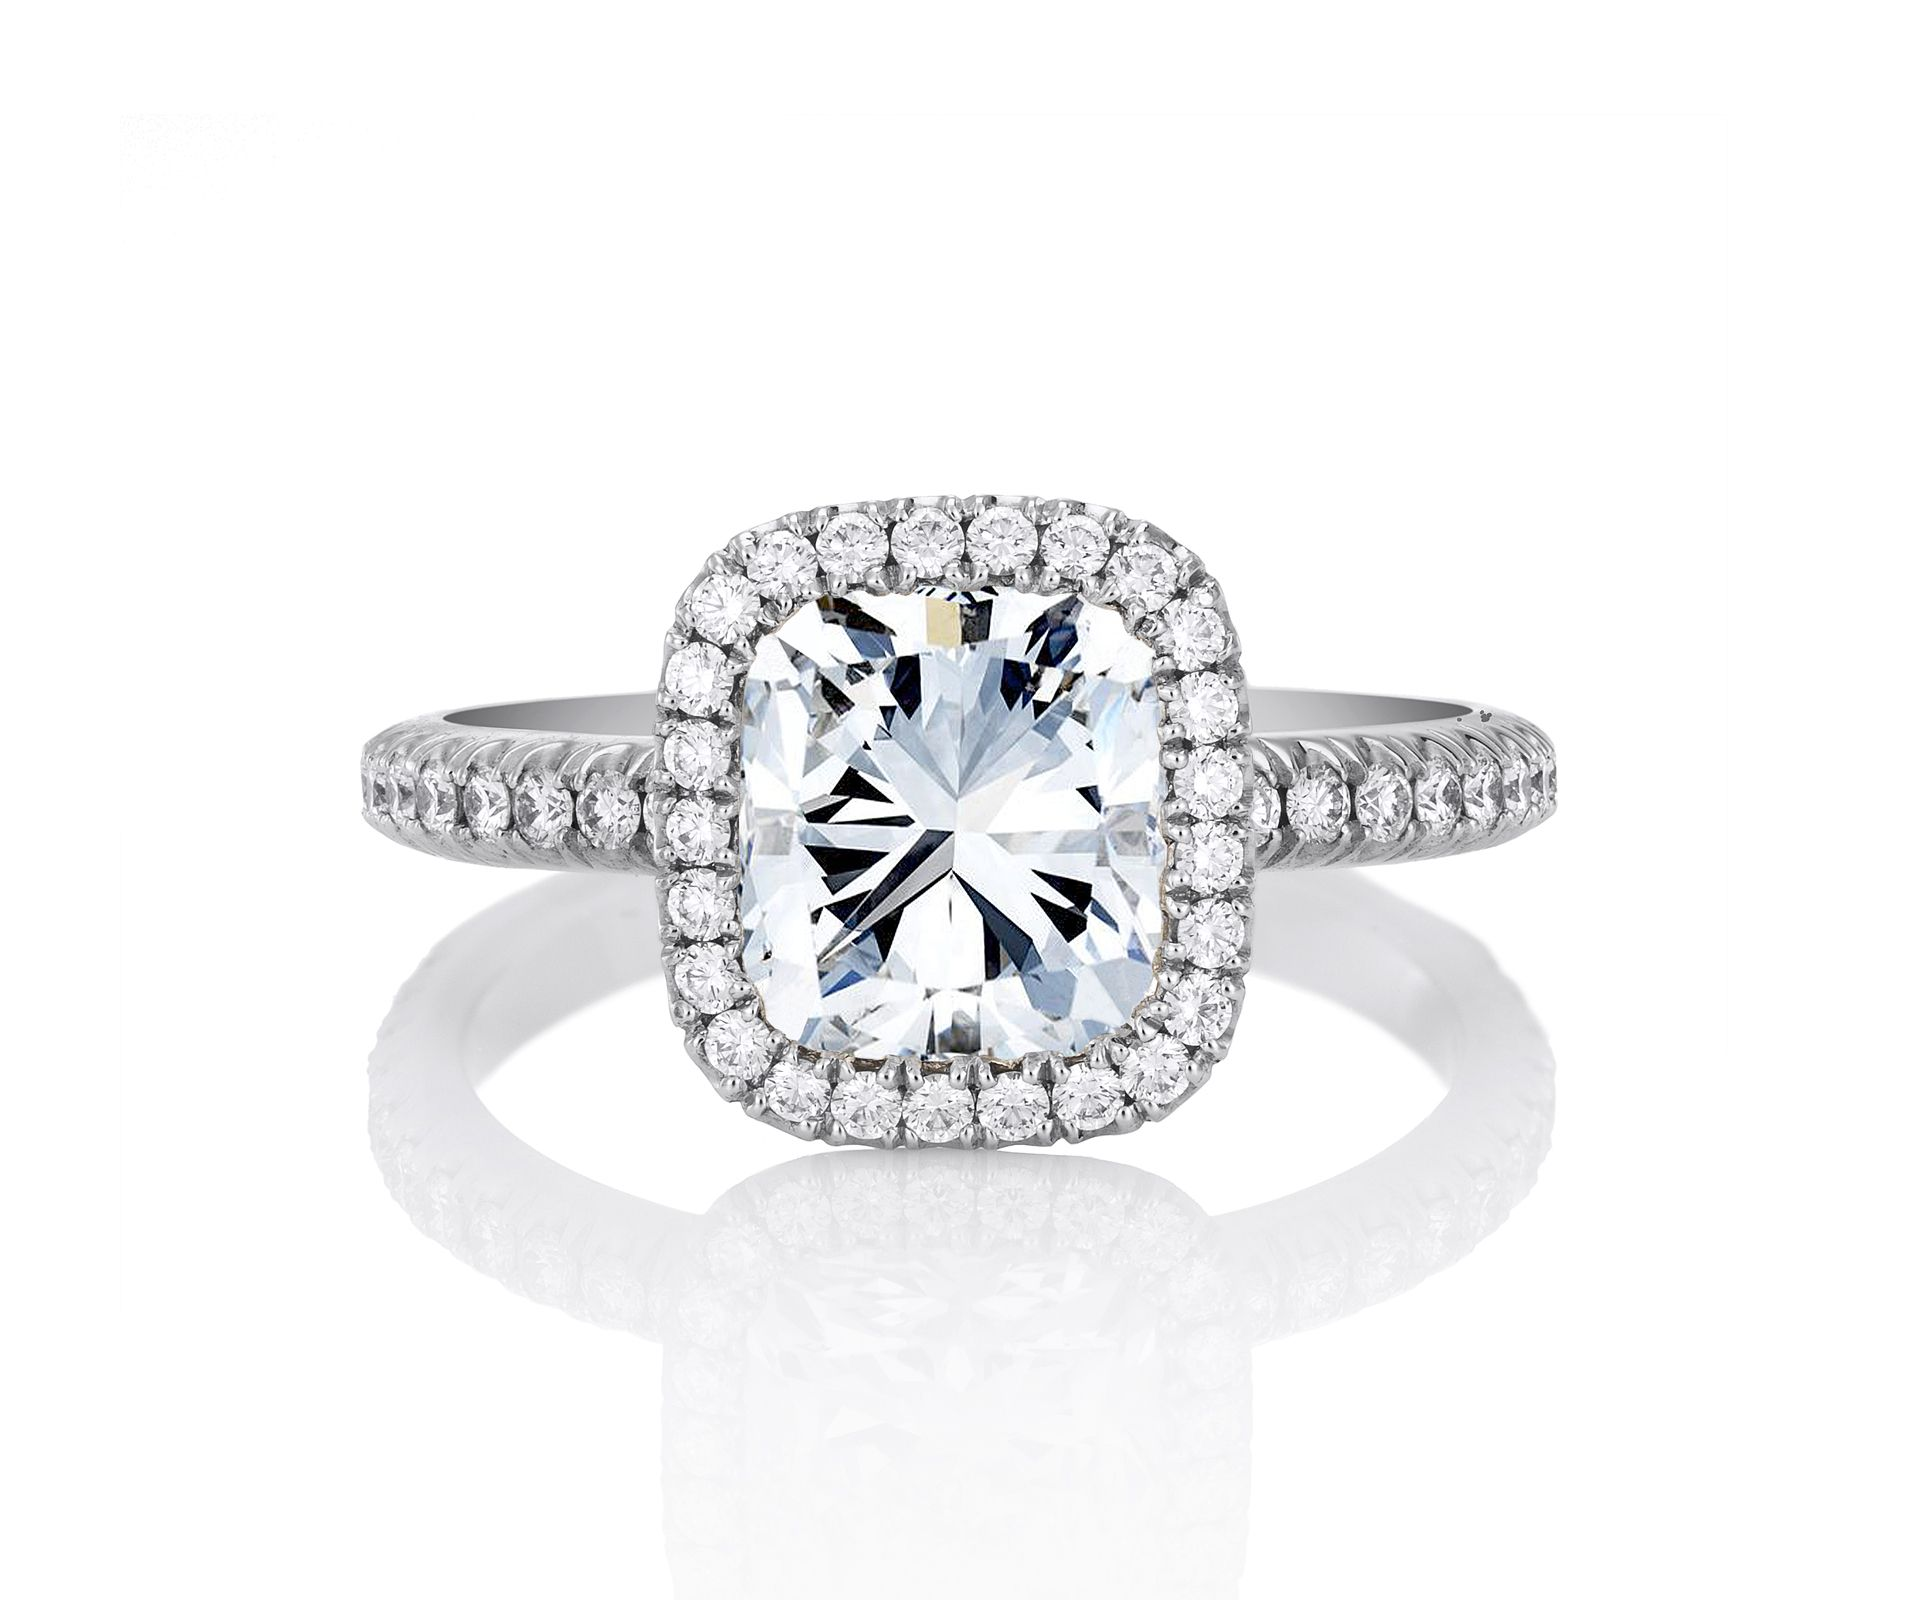 Cushion cut engagement rings the diamond cut that is taking